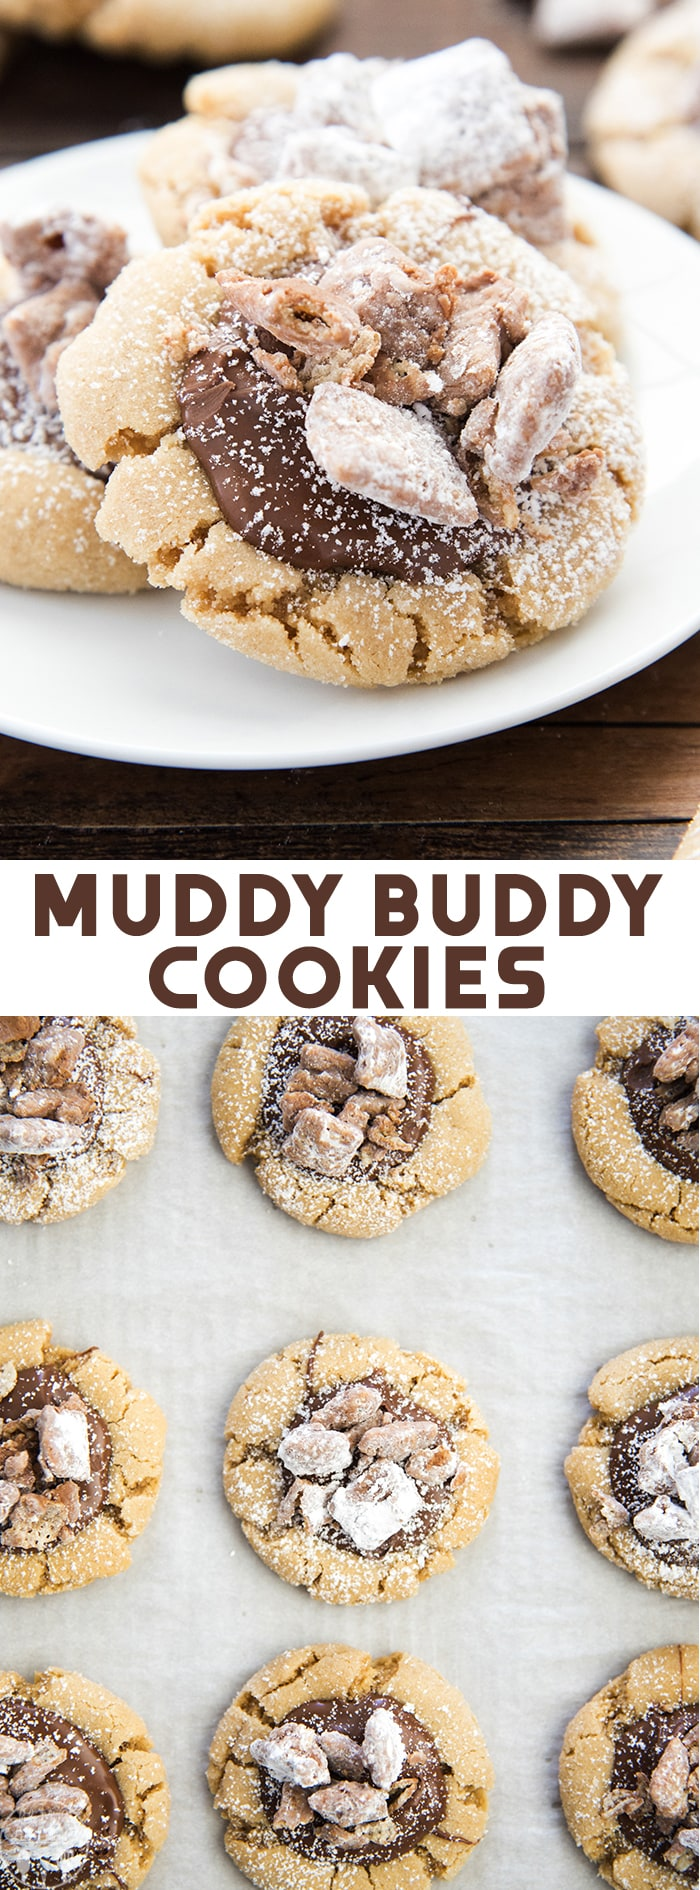 Muddy Buddy Cookies turn the popular chocolate and peanut butter snack into a delicious cookie. Soft and chewy peanut butter cookie topped with chocolate, powdered sugar and actual muddy buddies!